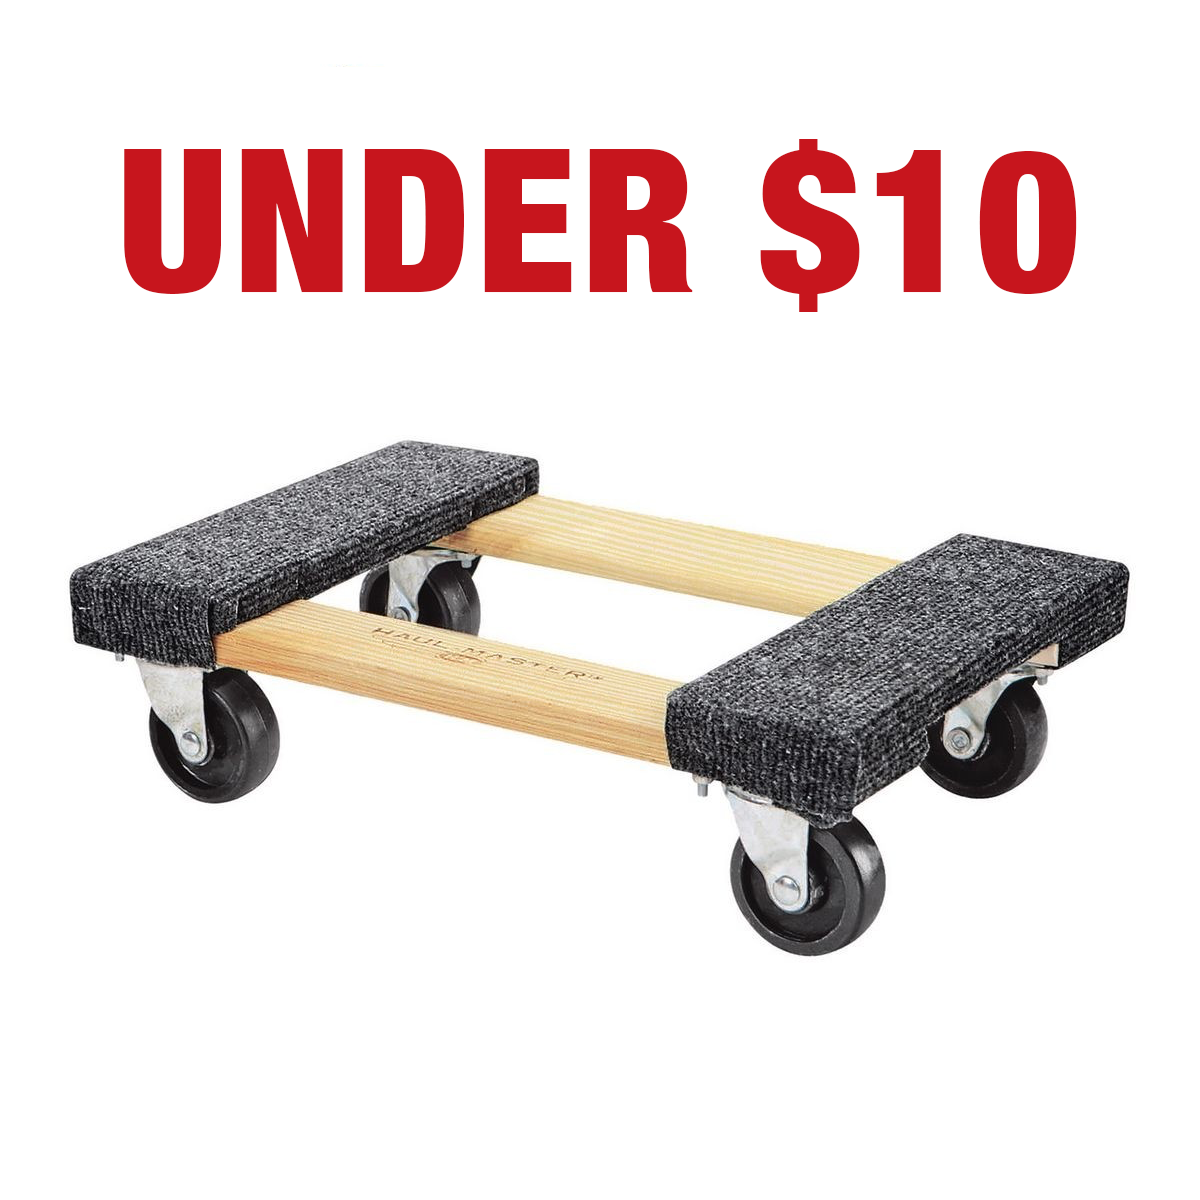 Items Under Ten Dollars at Harbor Freight